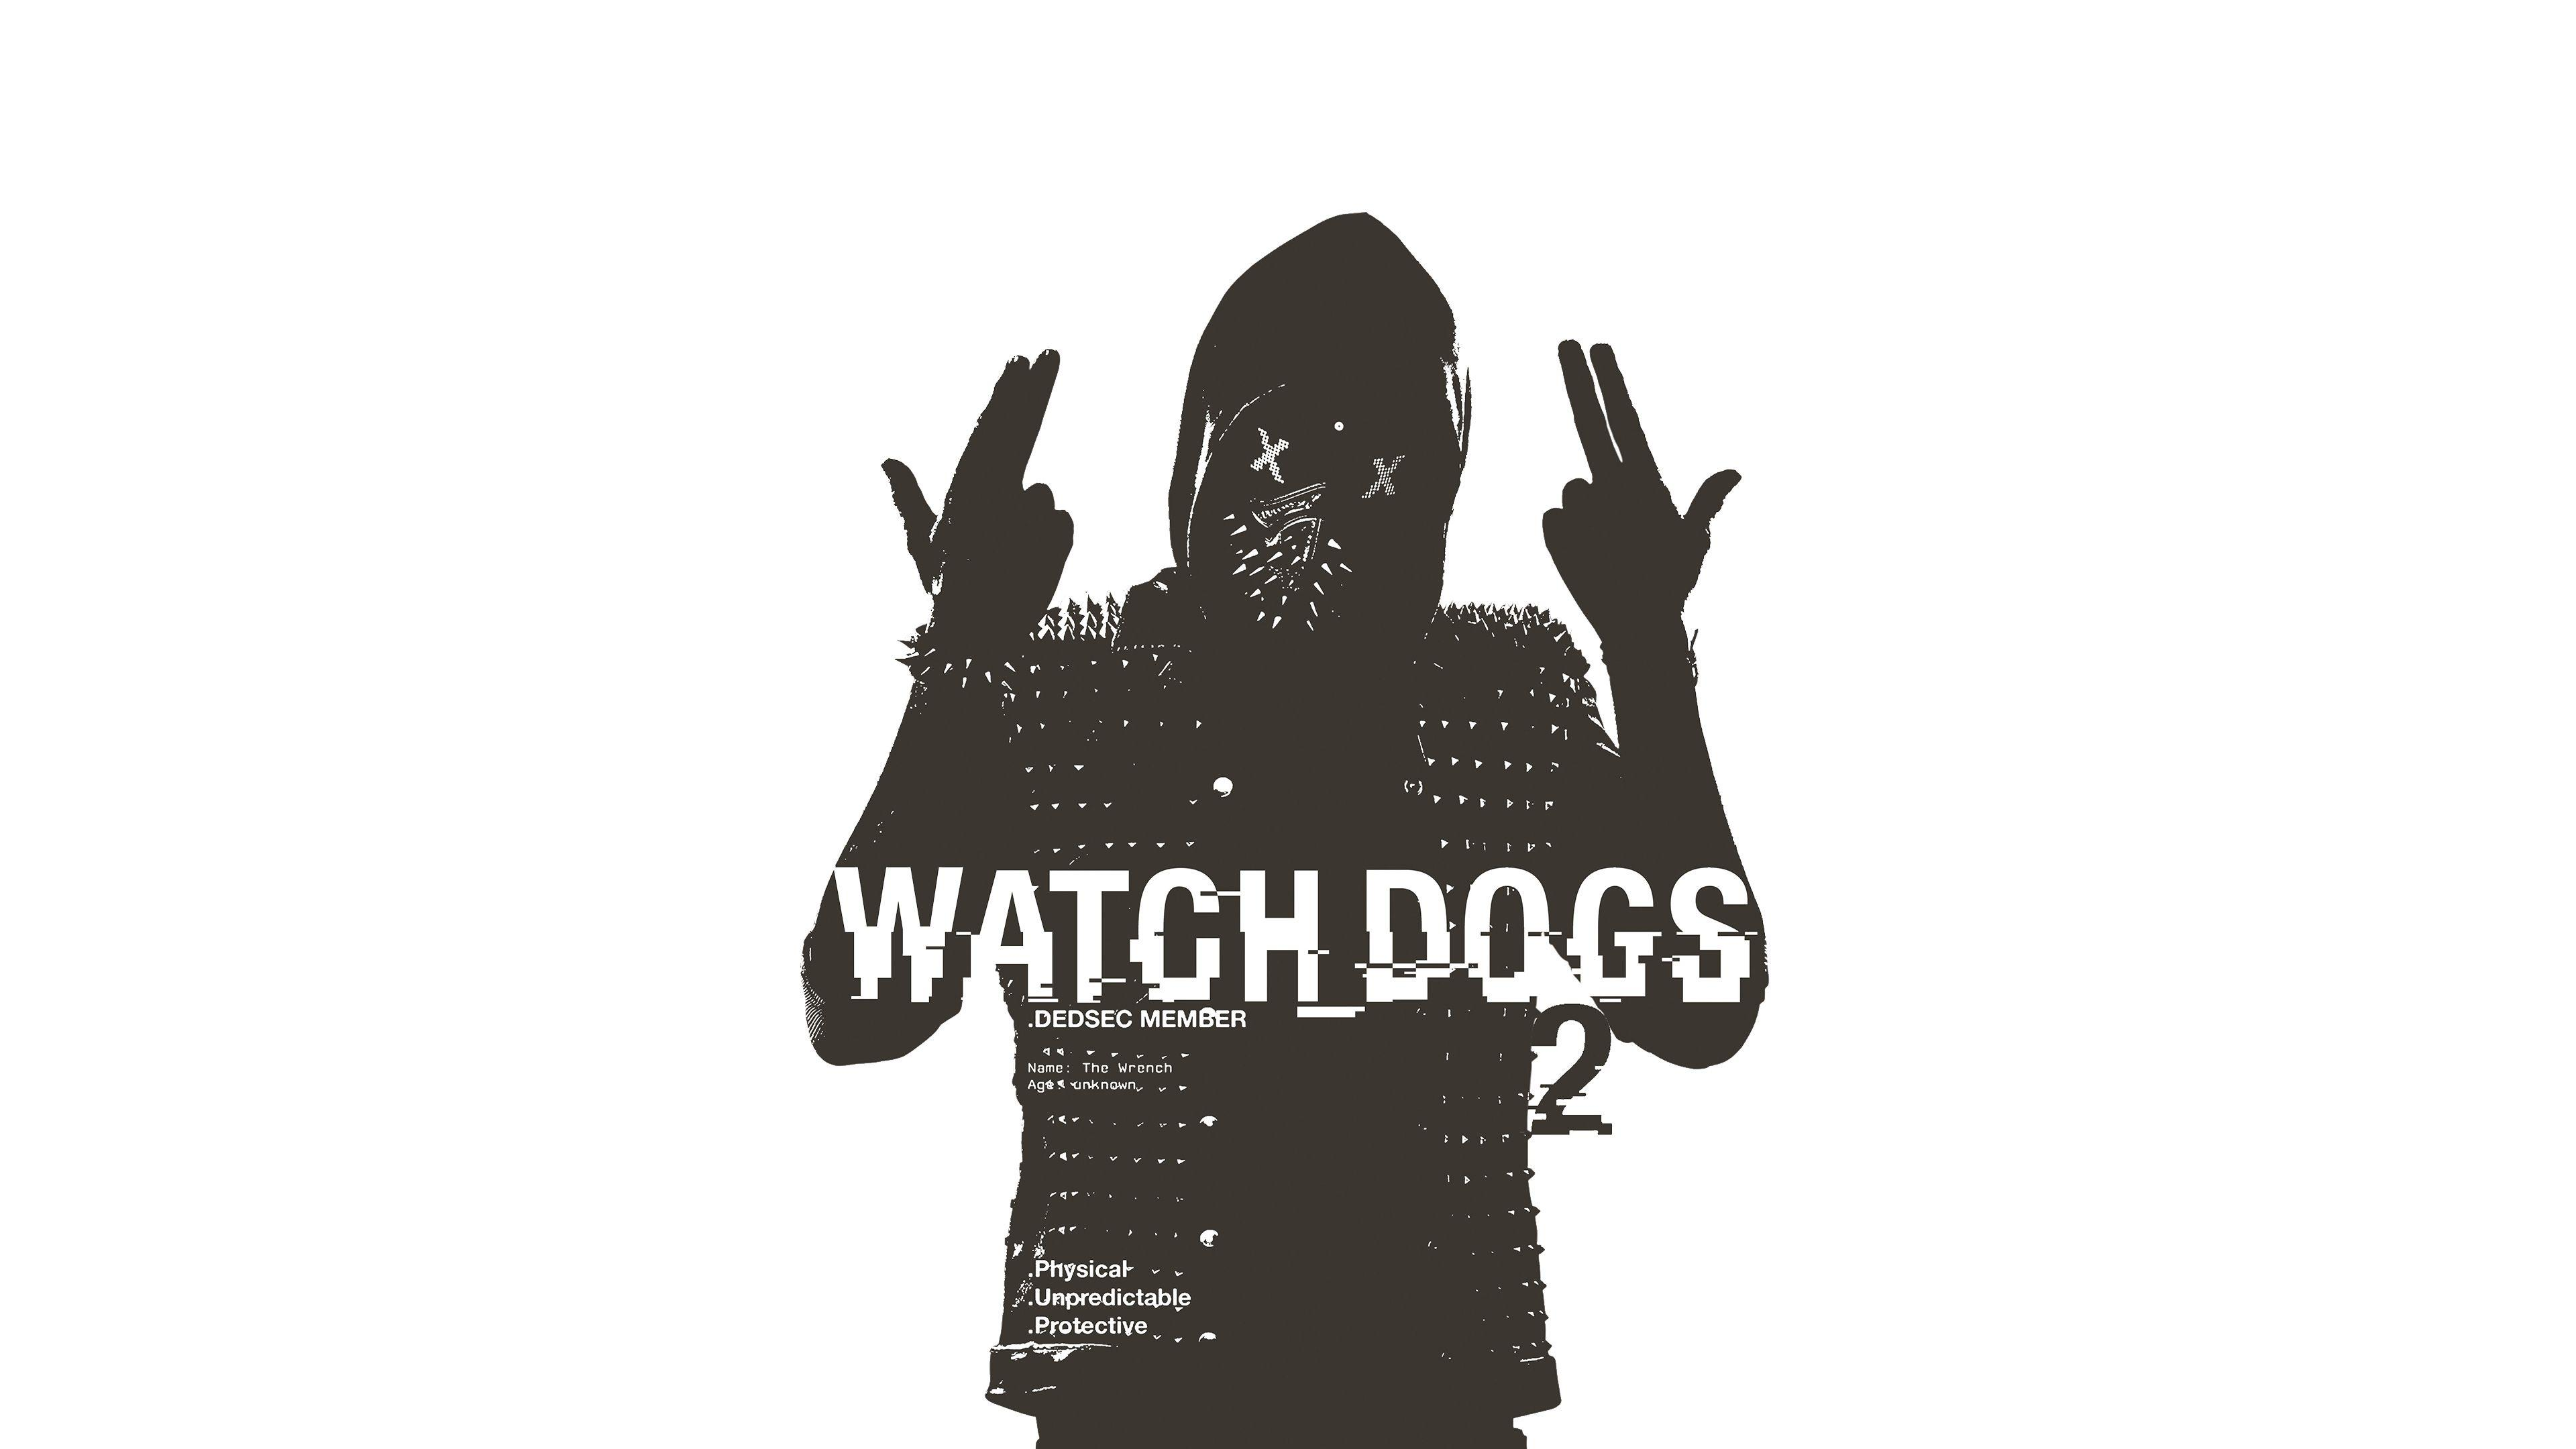 Watch Dogs 2 Wrench Poster | Games HD 4k Wallpapers